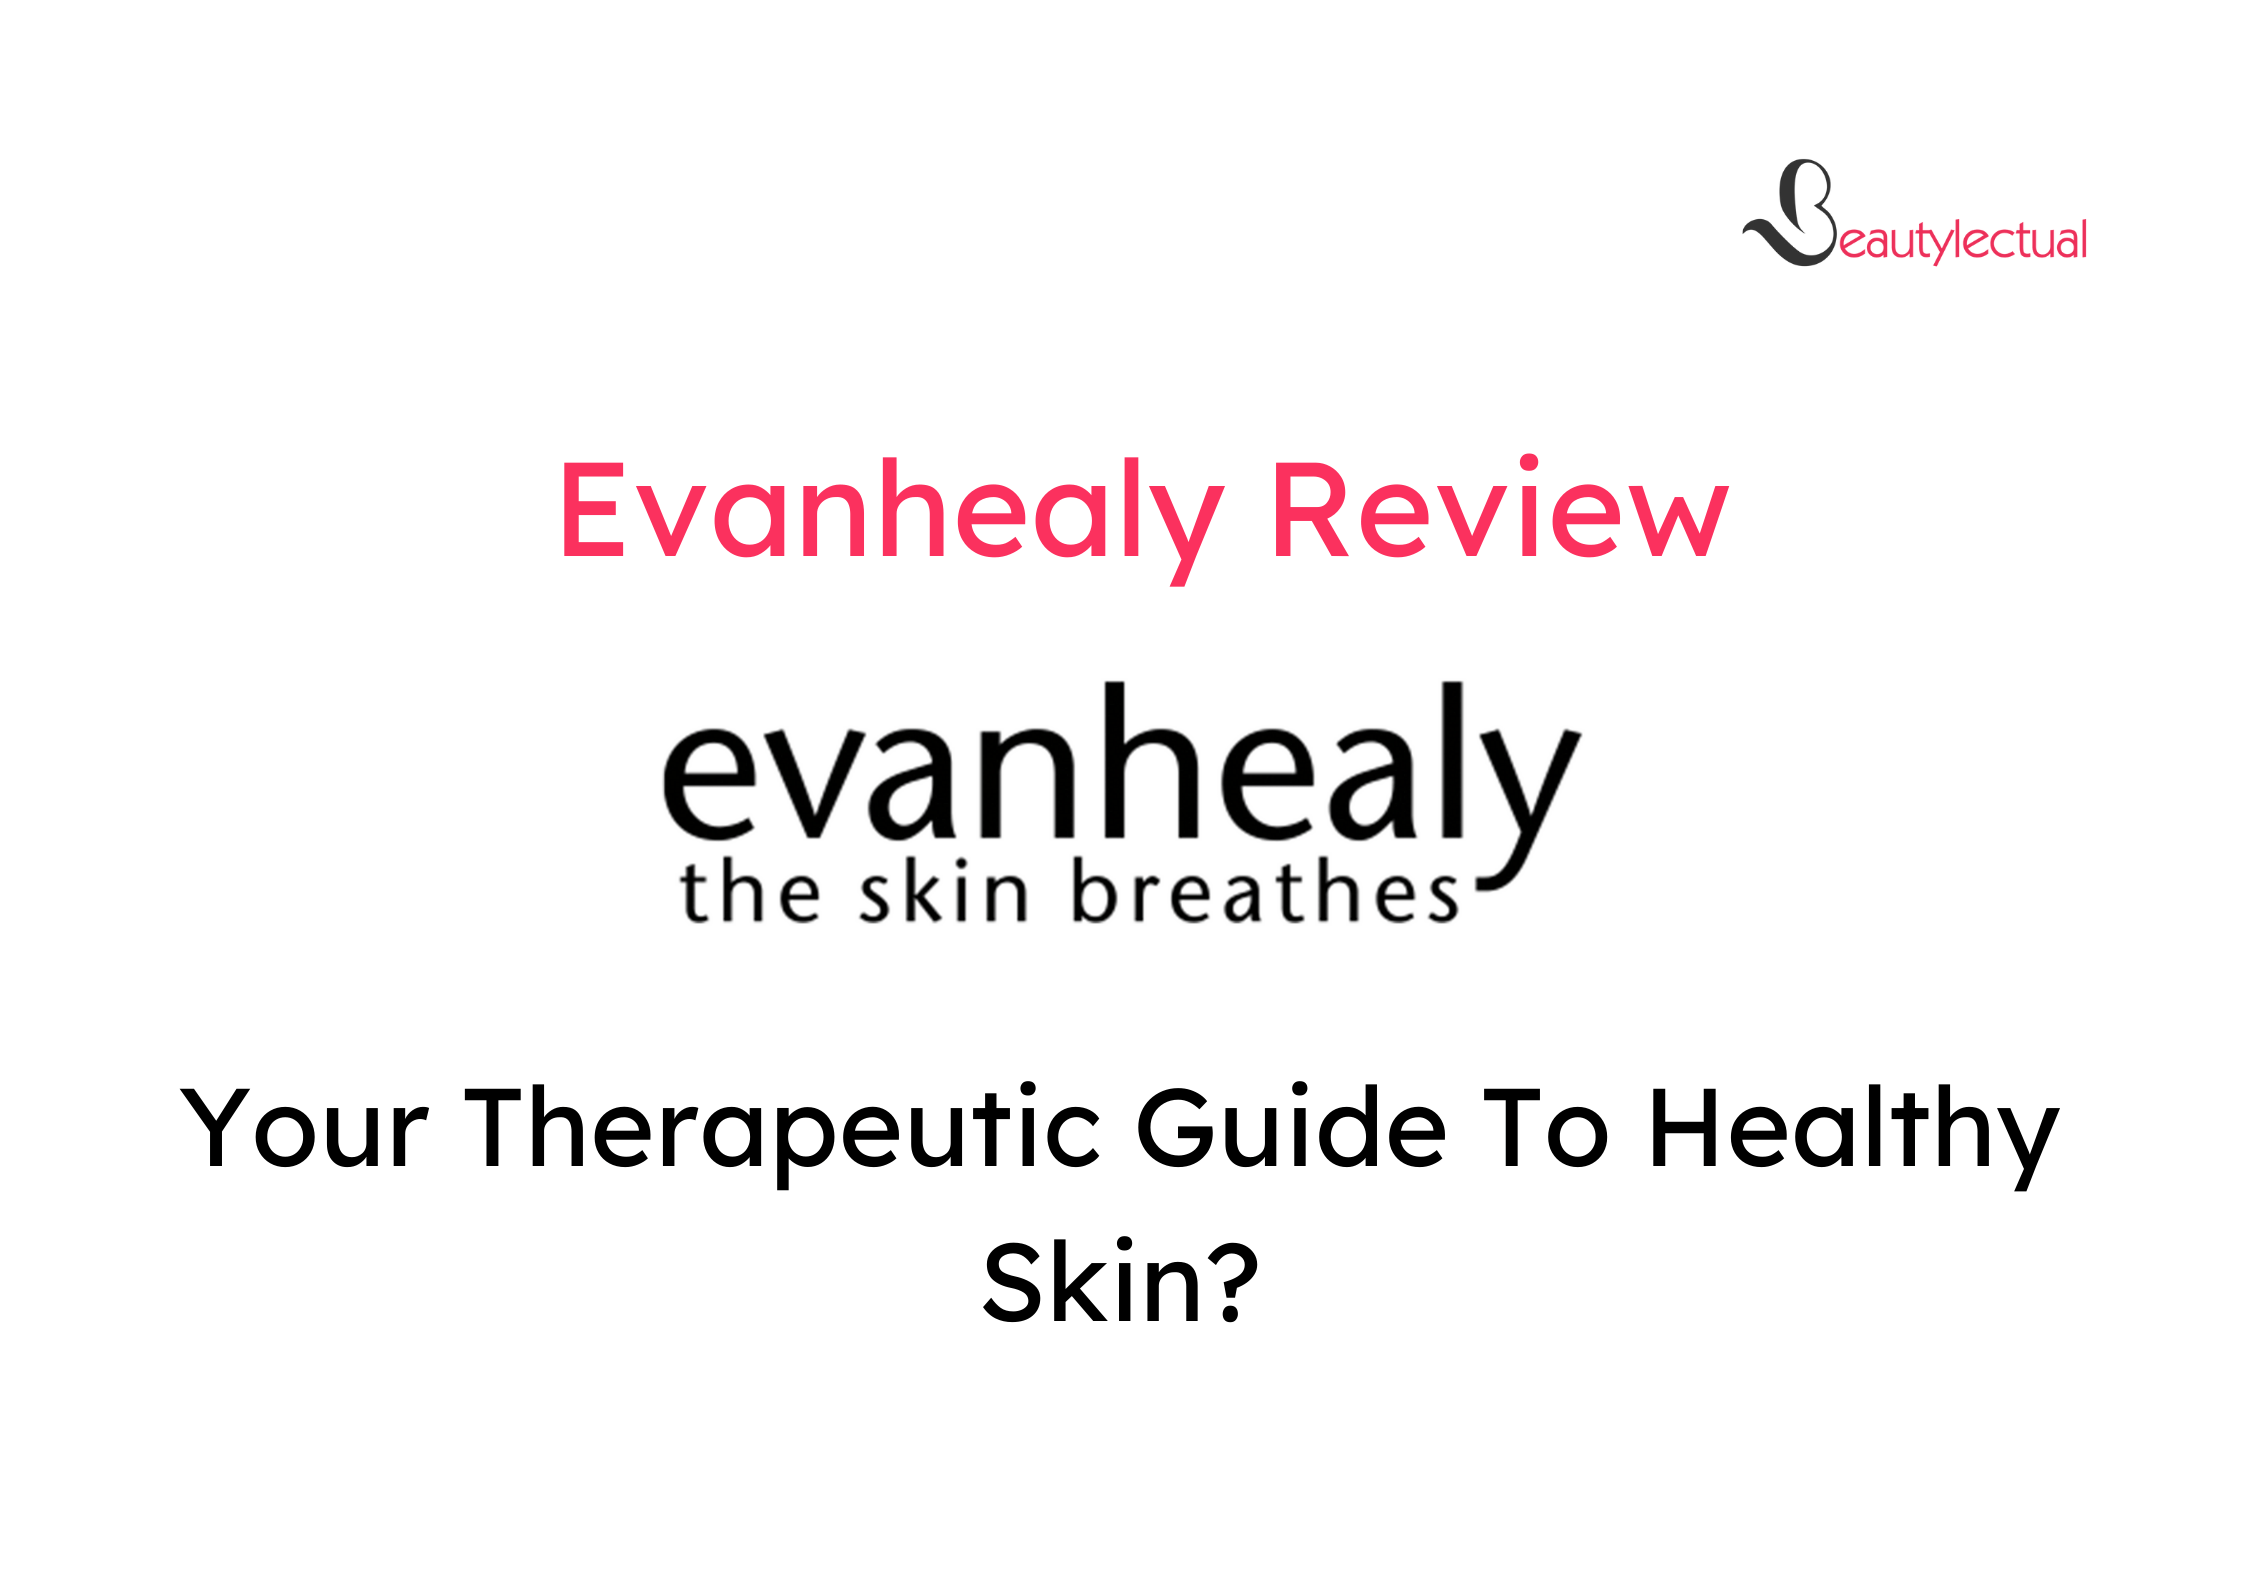 Evanhealy Review